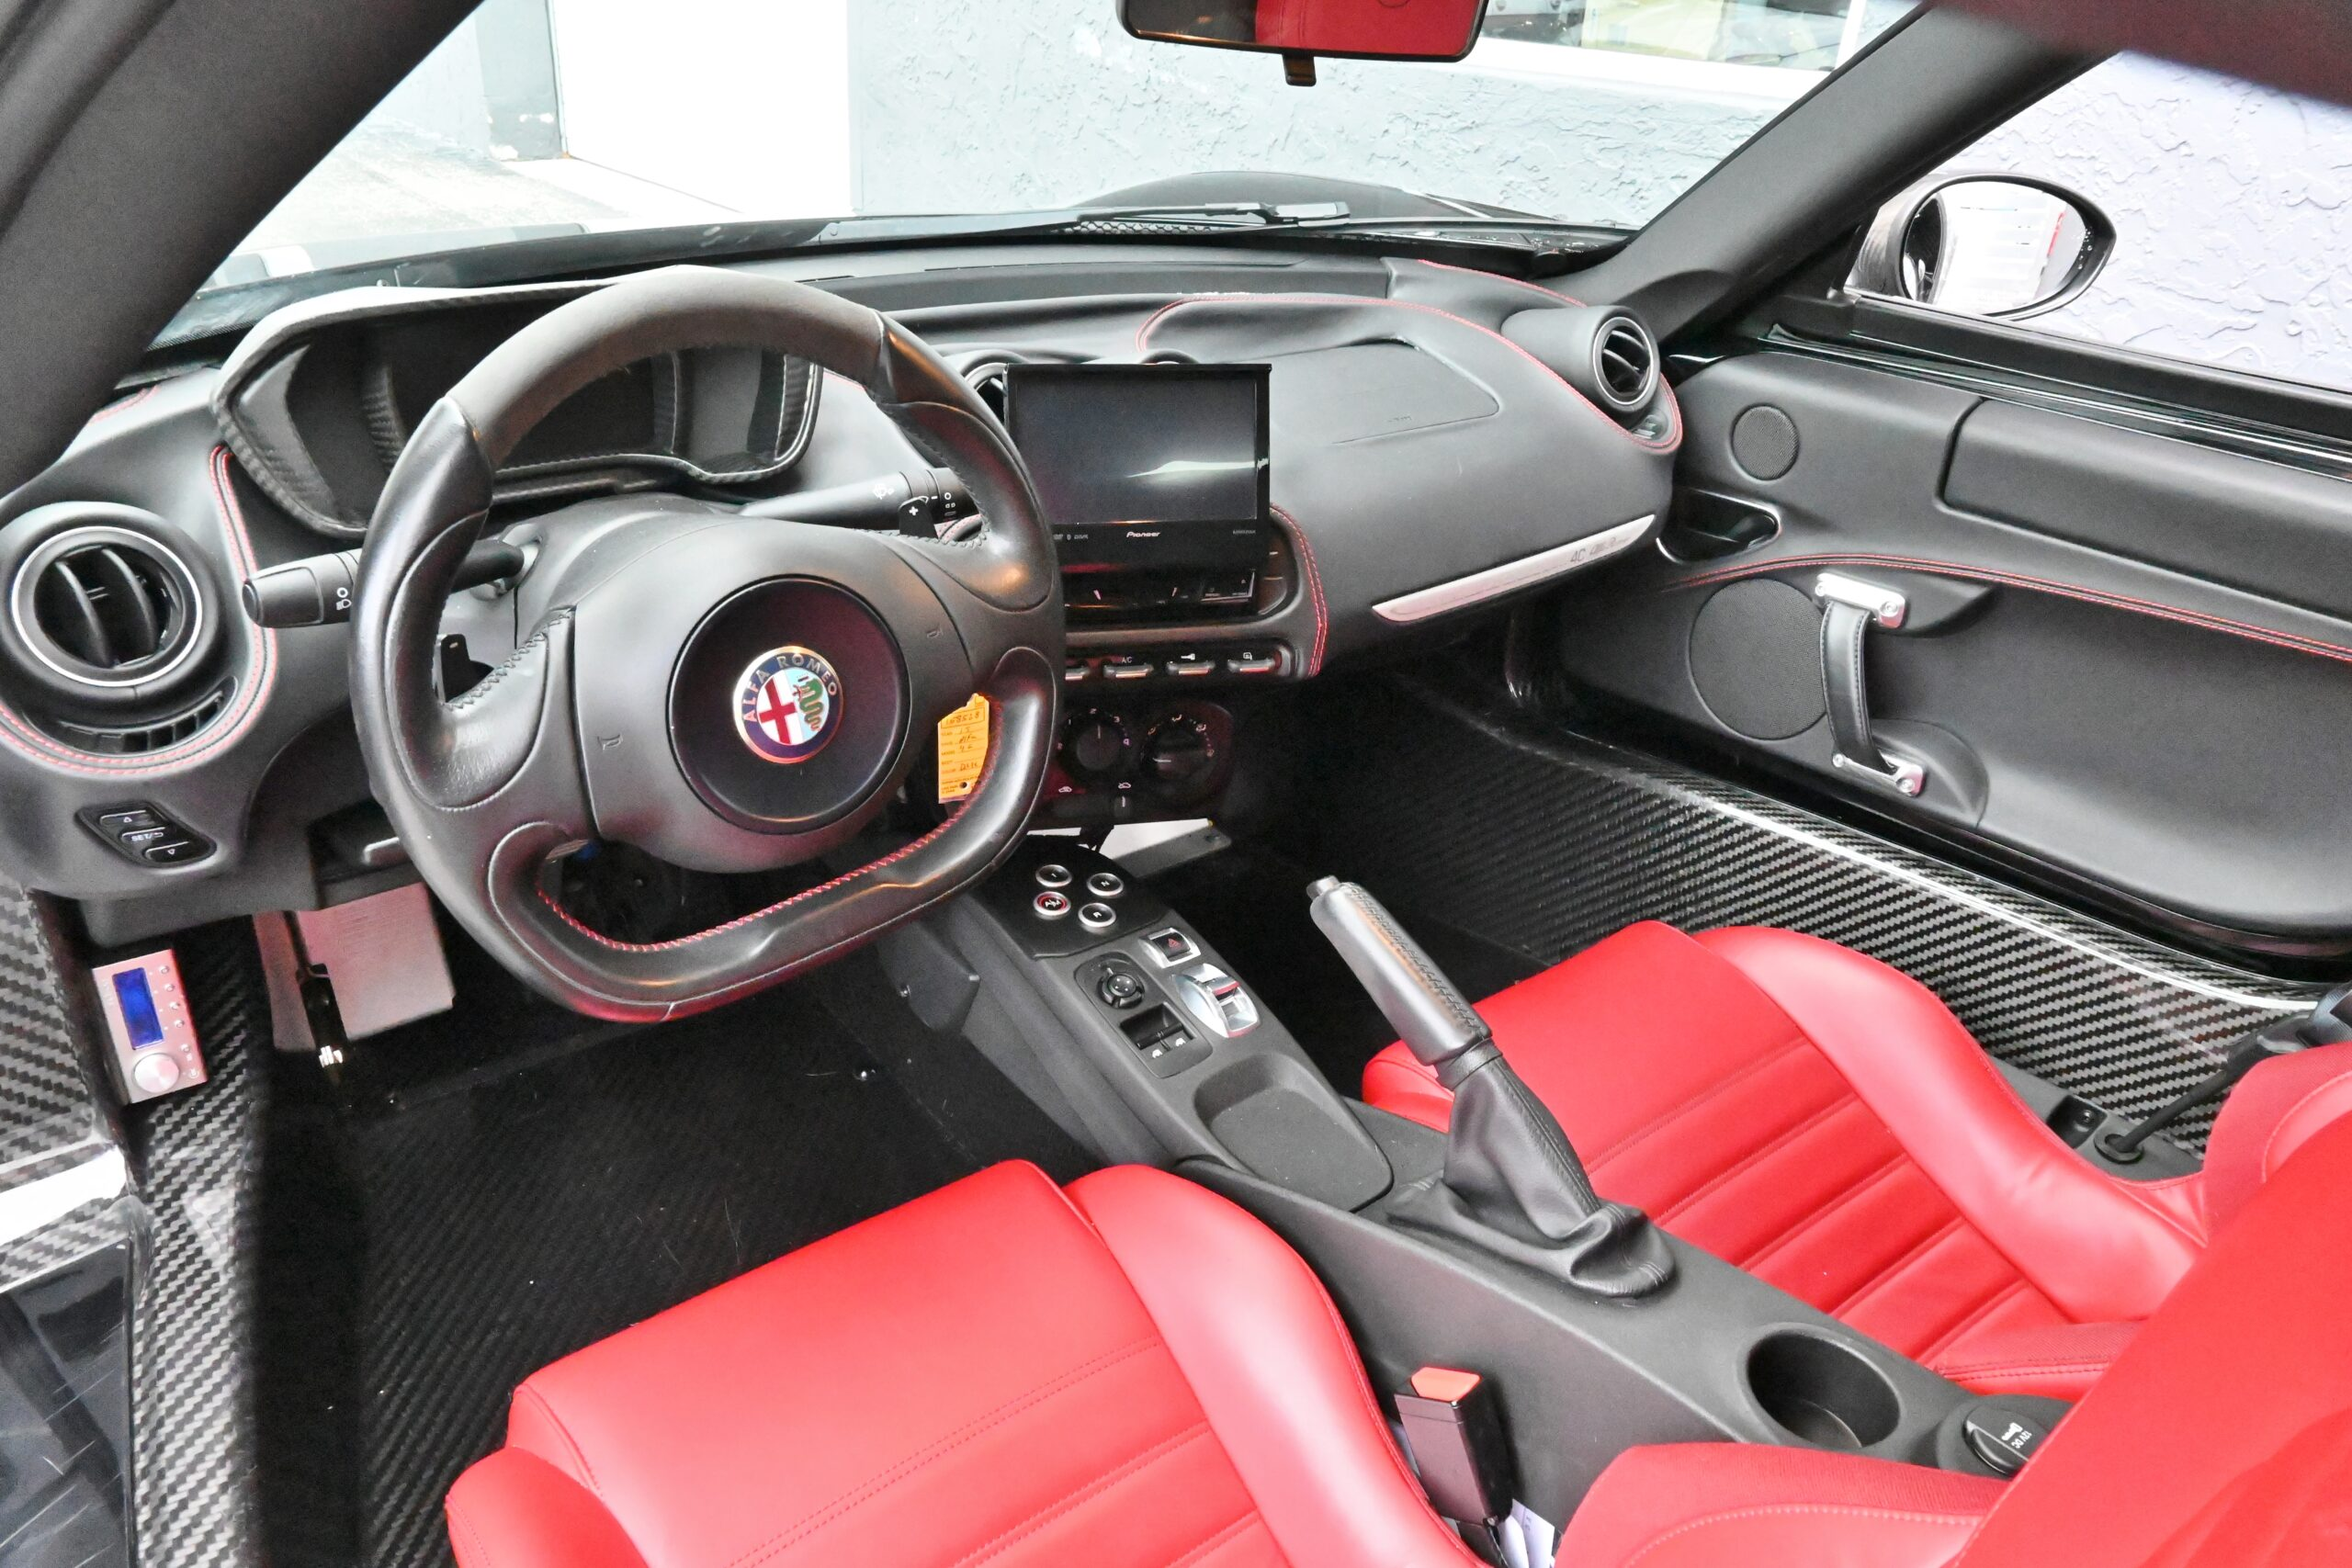 2015 Alfa Romeo 4C Only 24K Miles/ Original Paint/ Fresh Major Service At Dealership/ Fully LOADED